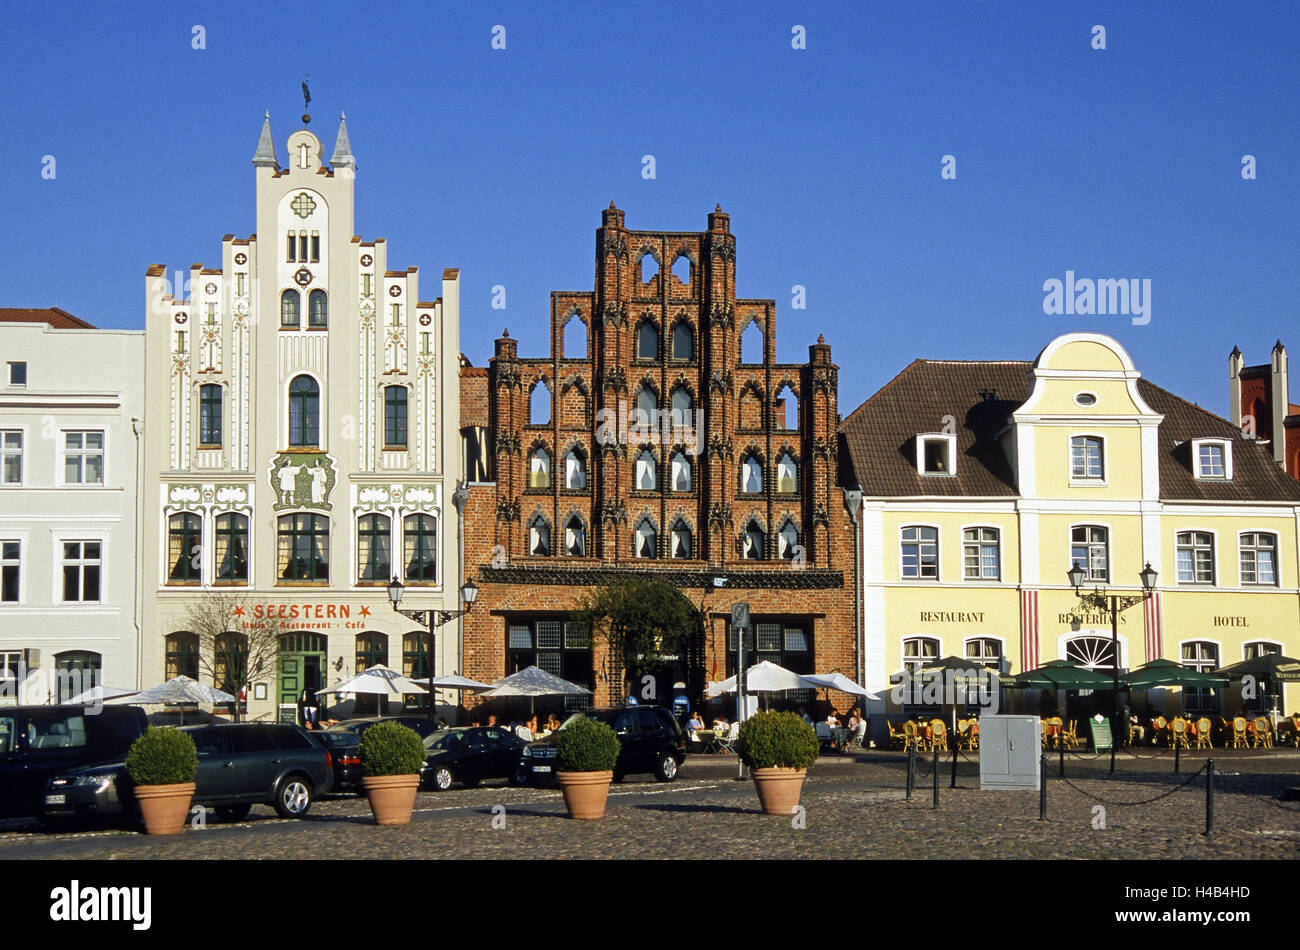 Germany, Mecklenburg-Western Pomerania, Wismar, old town, market square, terrace, town house, 'Alter Schwede', - Stock Image